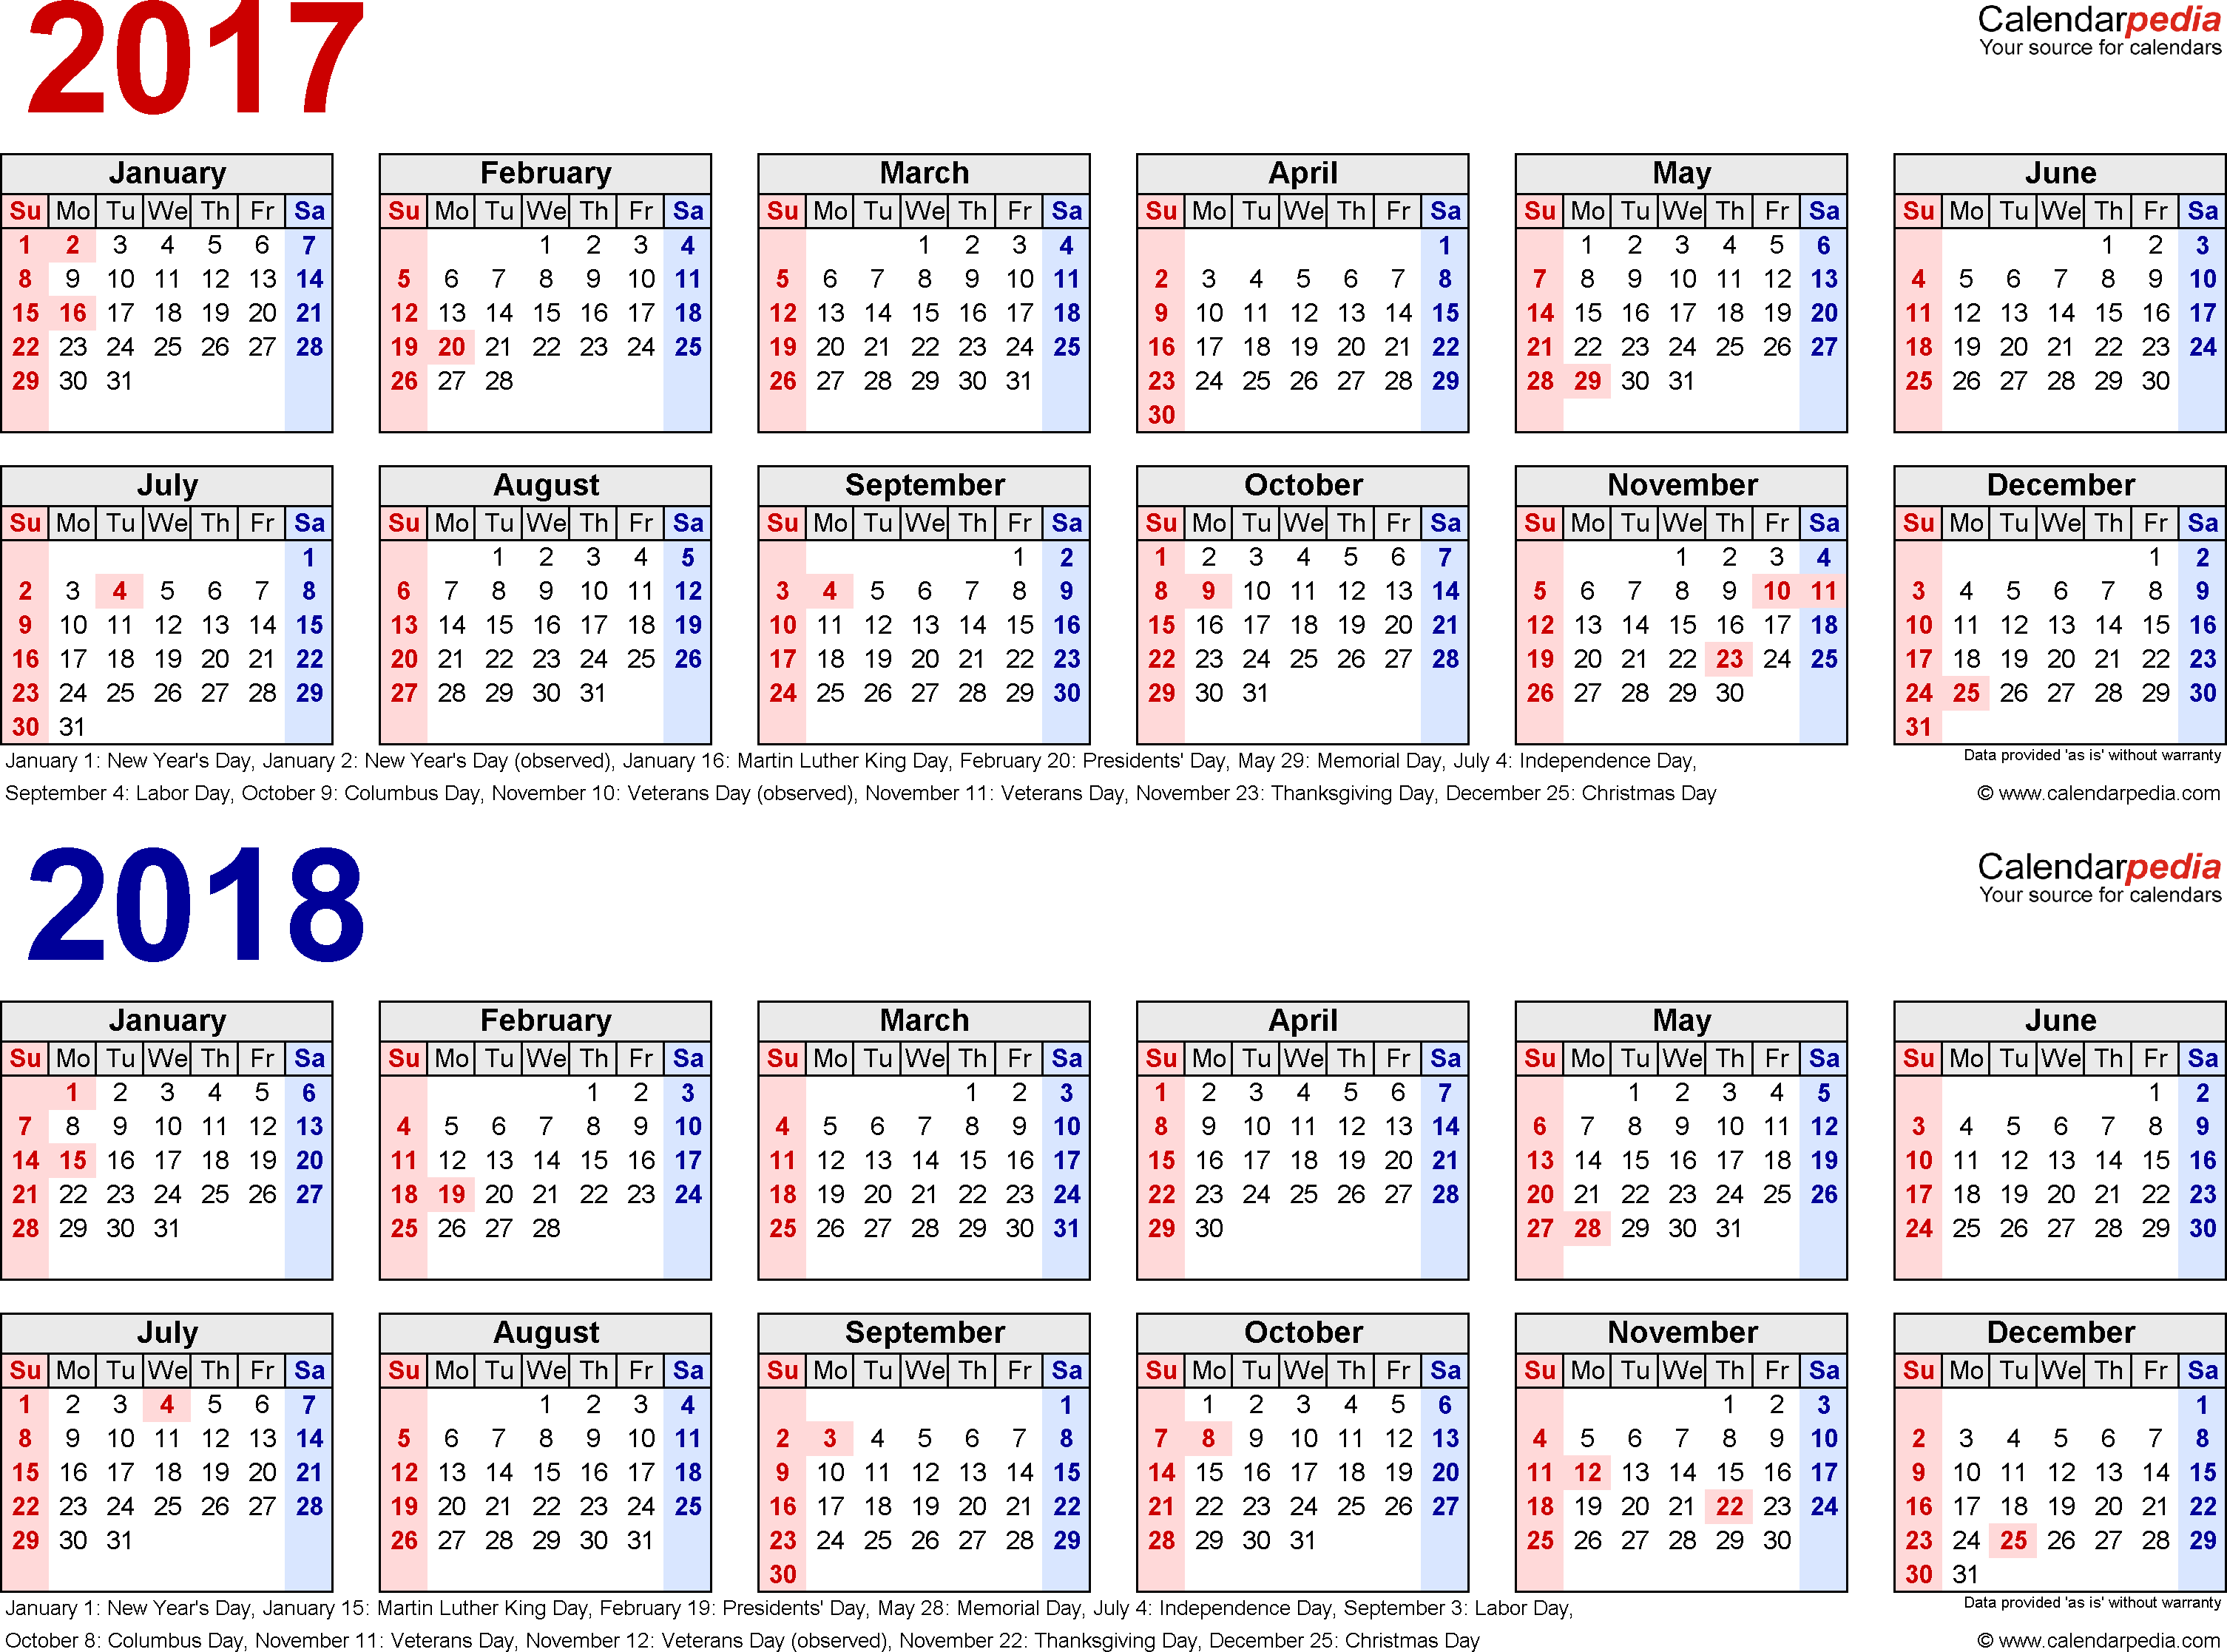 Template 1: Microsoft Excel template for two year calendar 2017/2018 (landscape orientation, 1 page, linear, in red and blue)